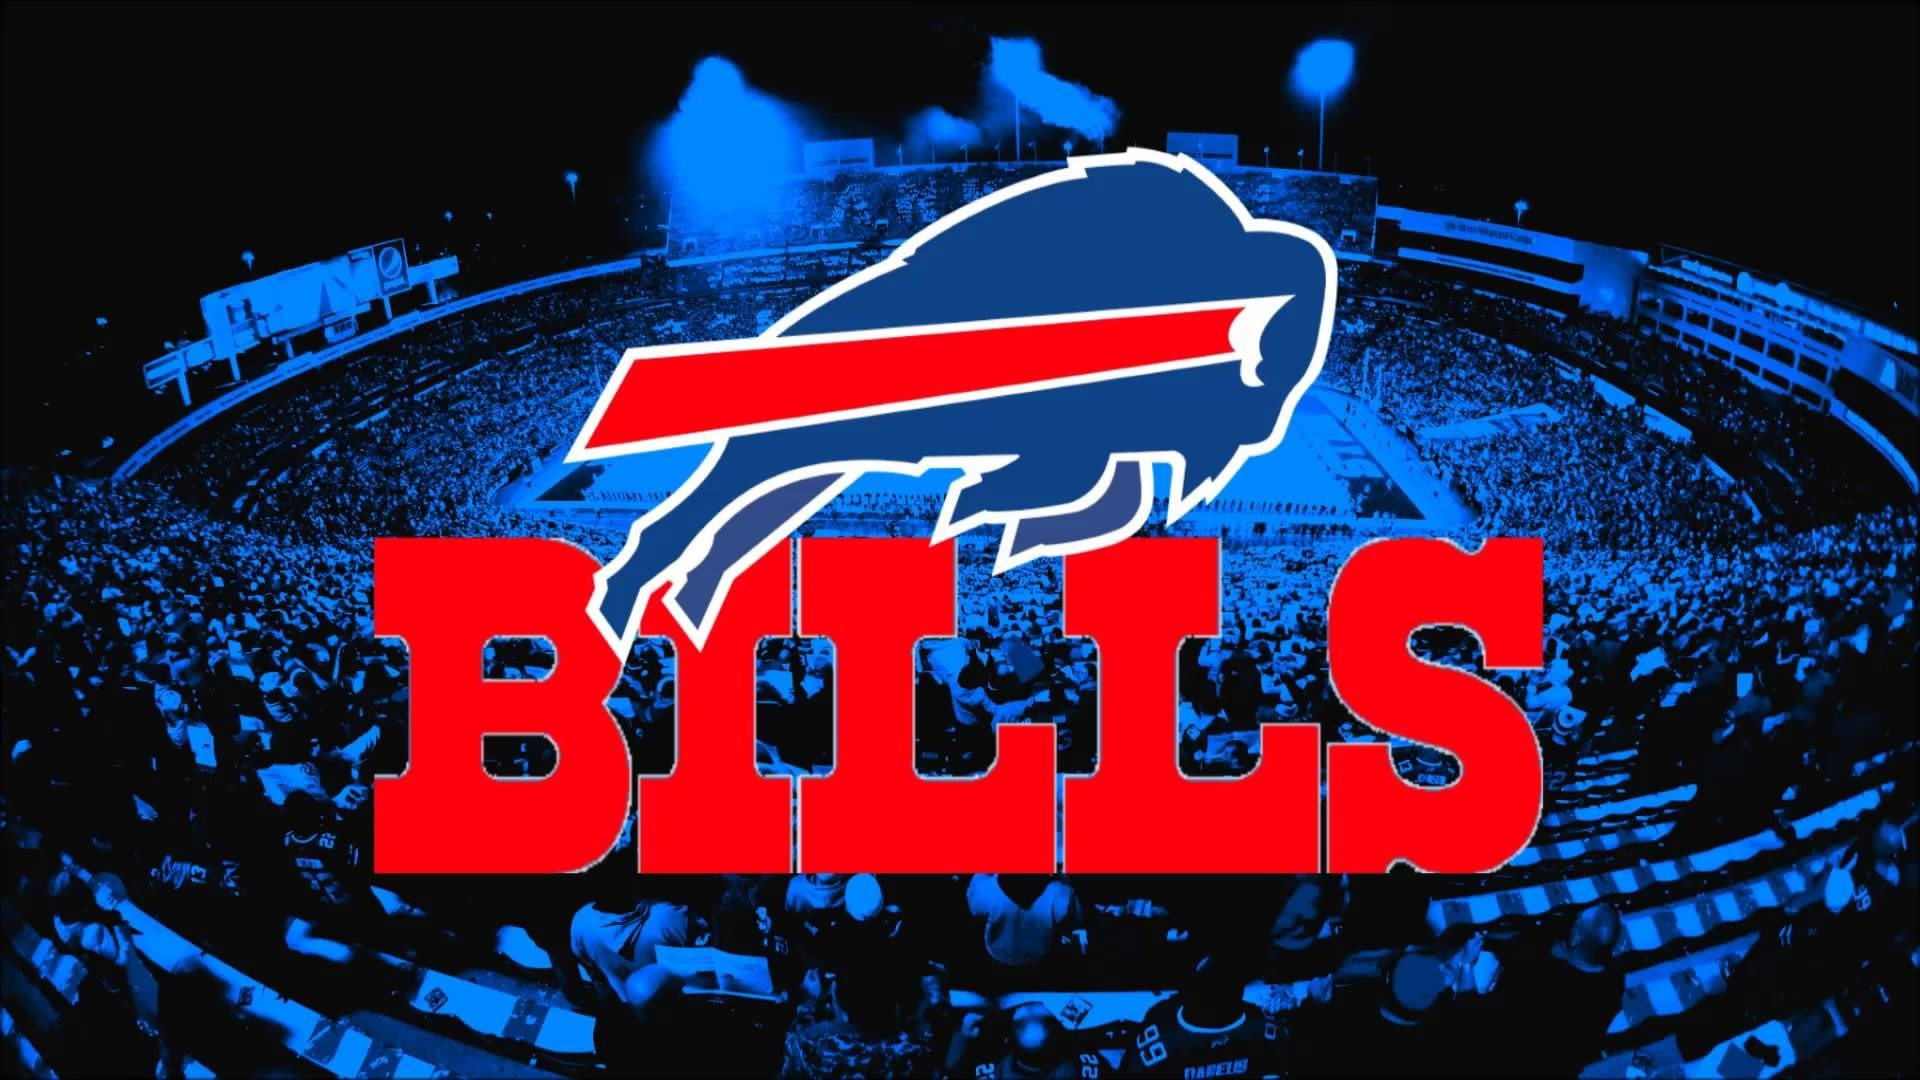 free desktop pictures buffalo bills by Lester Walls (2016-08-14)